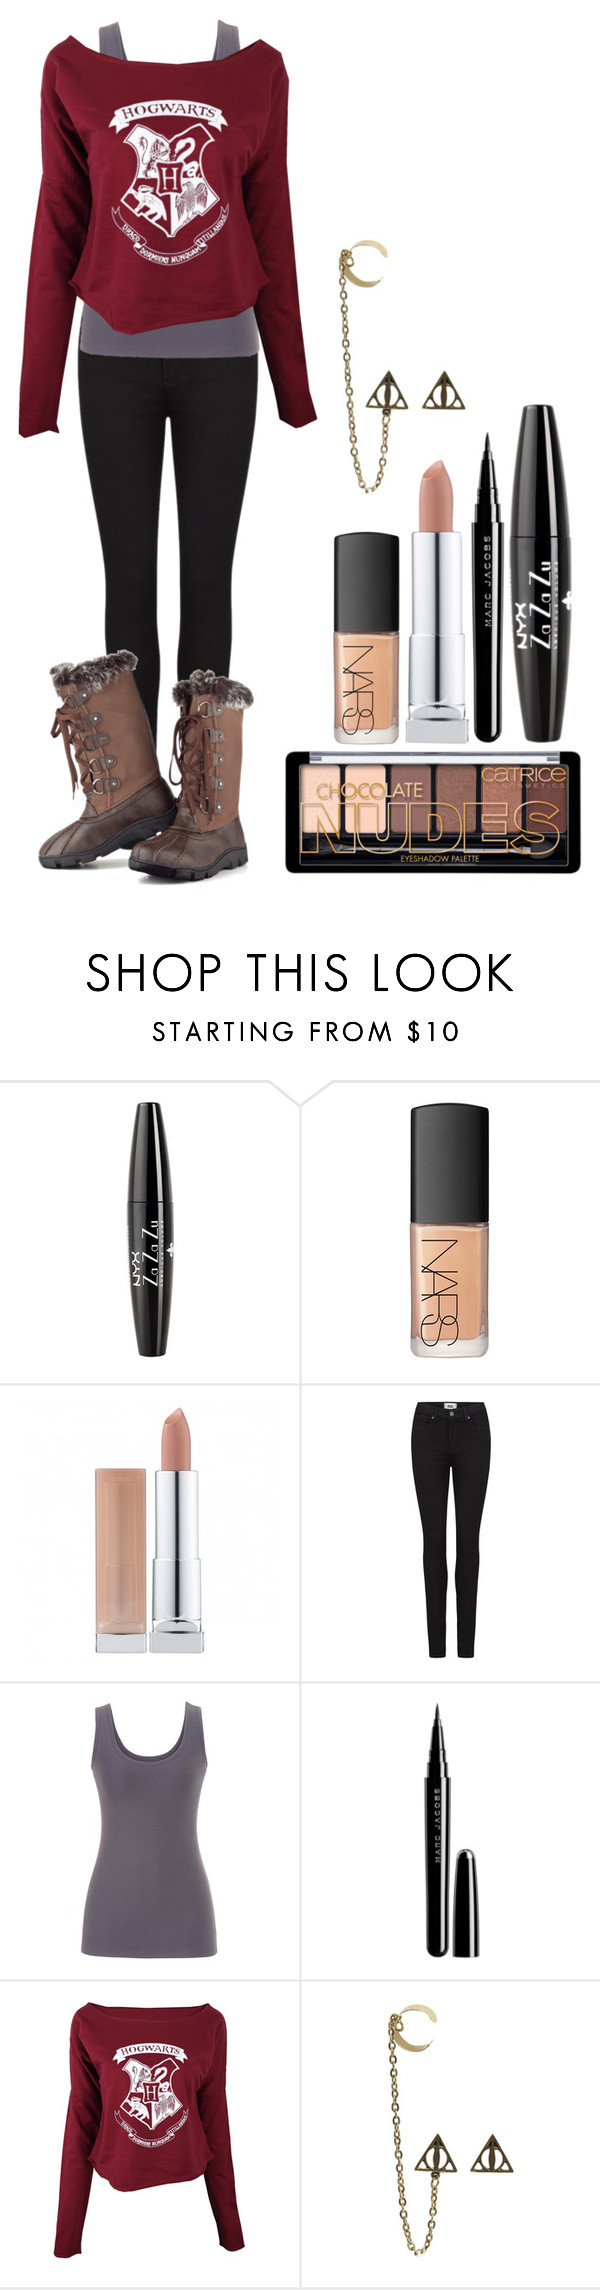 """""""Hogwarts"""" by fairytale-reality ❤ liked on Polyvore featuring NYX, NARS Cosmetics, Paige Denim, maurices, Marc Jacobs and Chase & Chloe"""